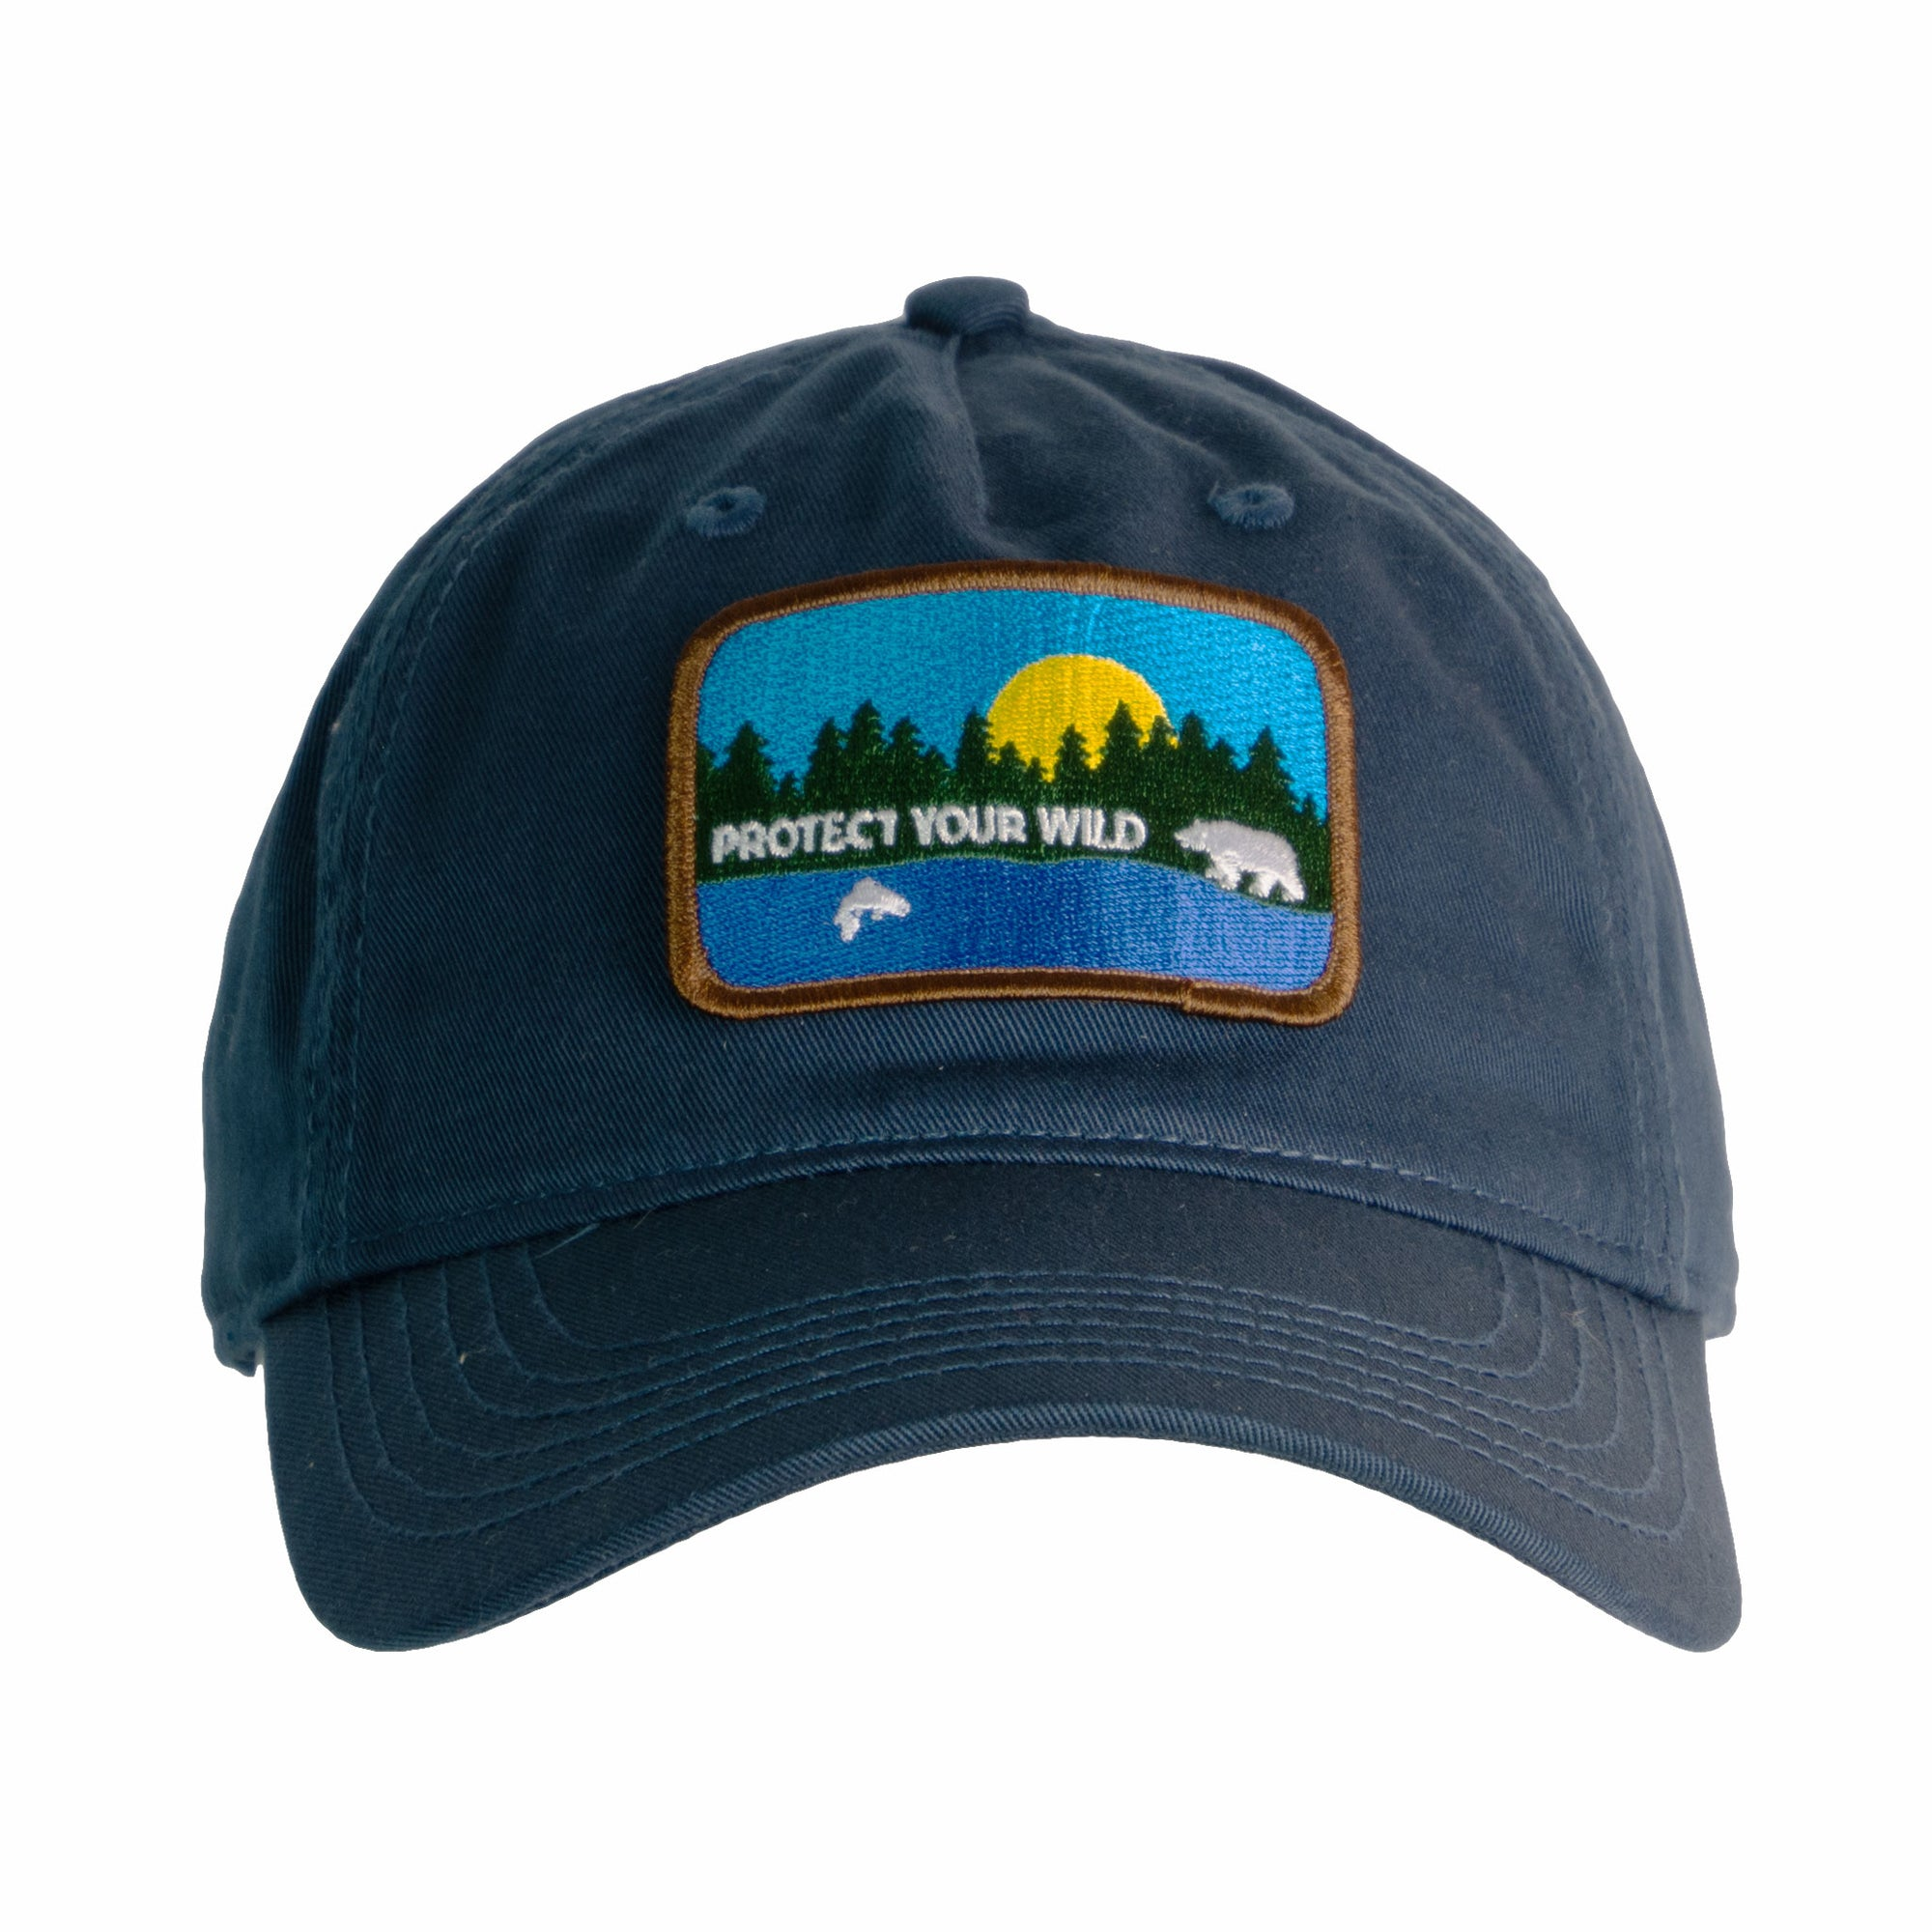 PROTECT YOUR WILD Organic Cotton Hat